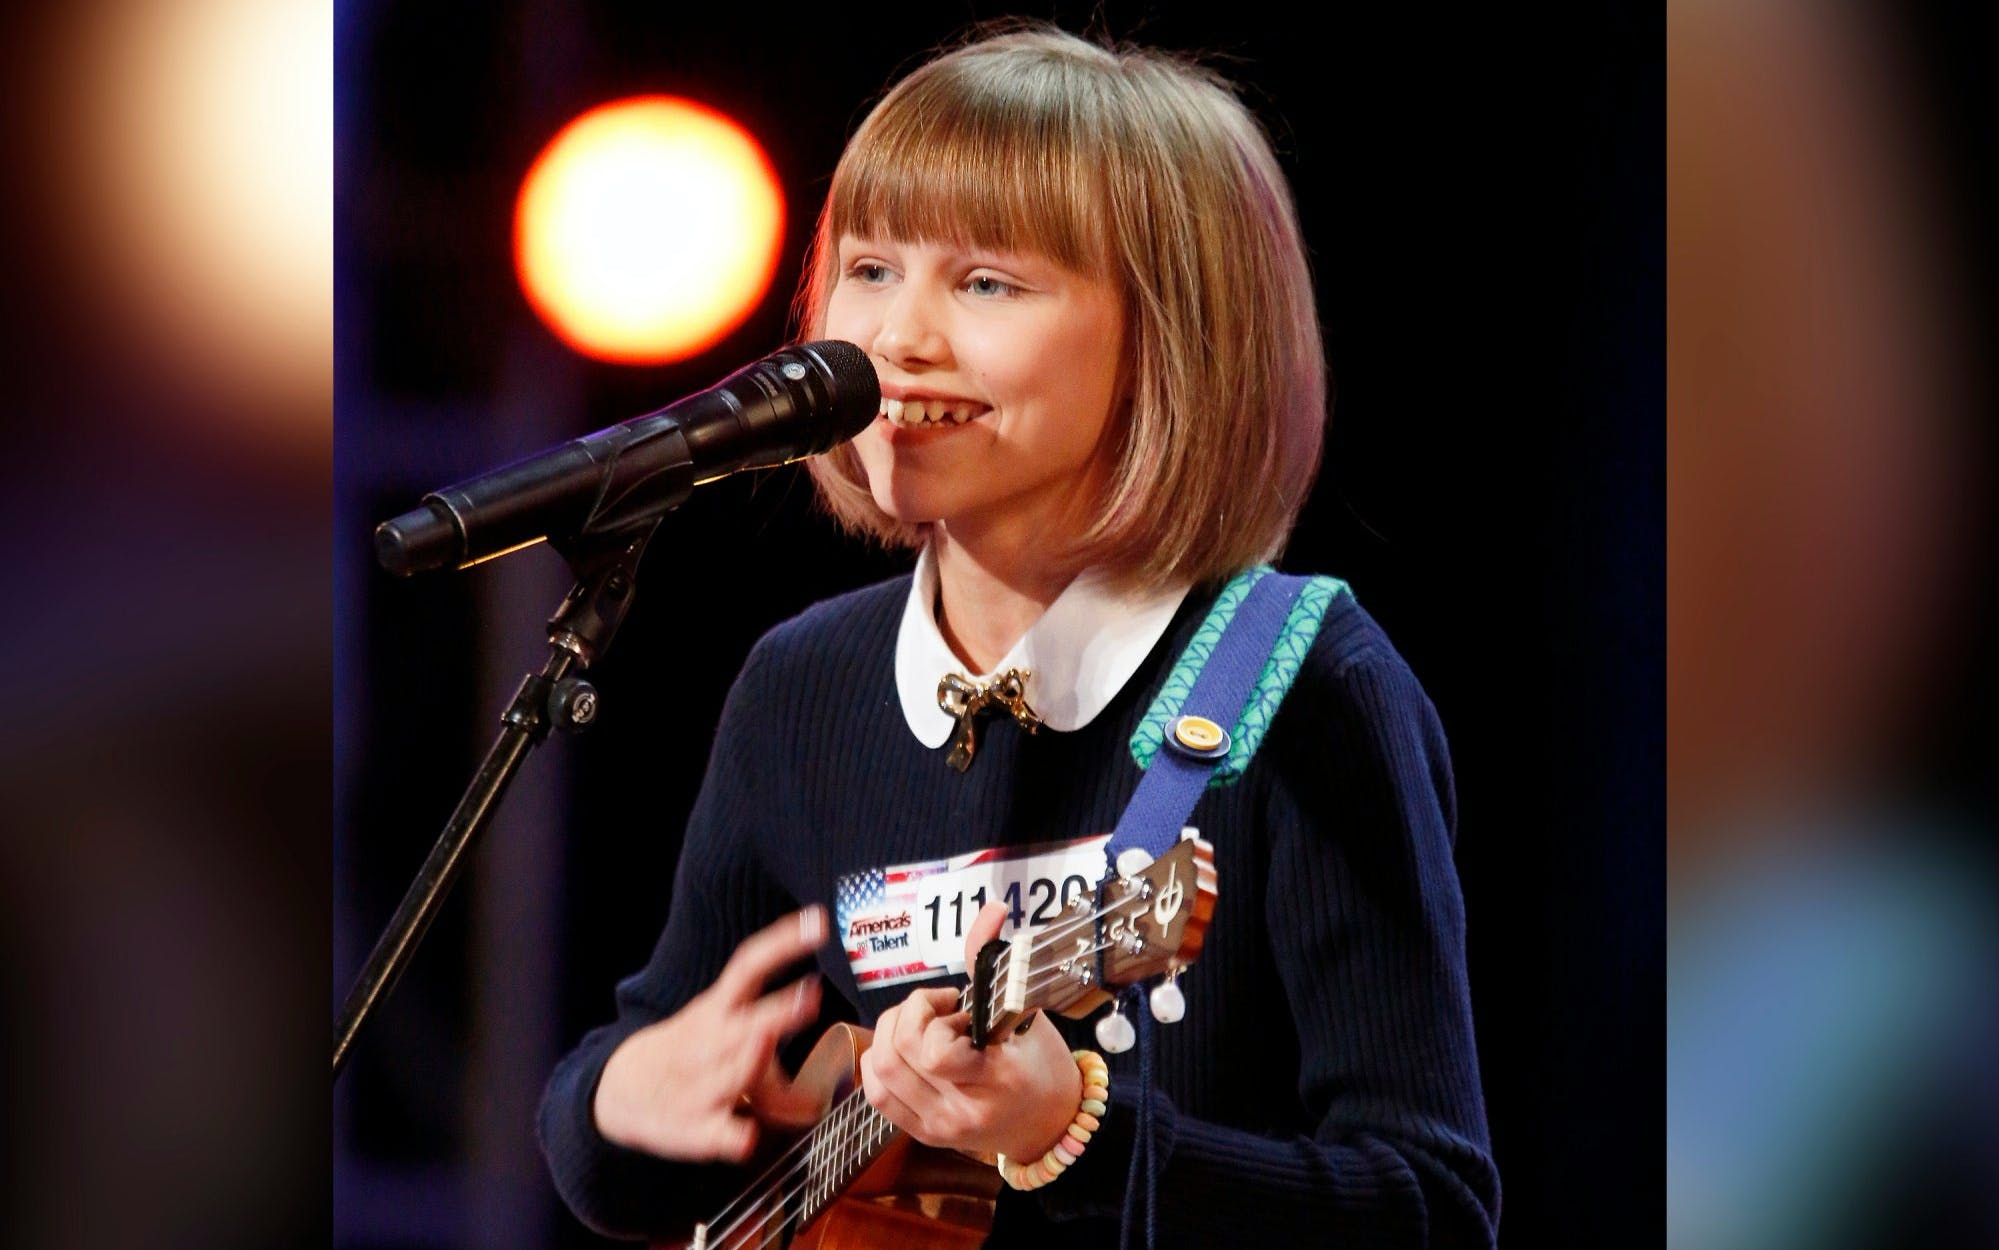 america's got talent live starring grace vanderwaal-2